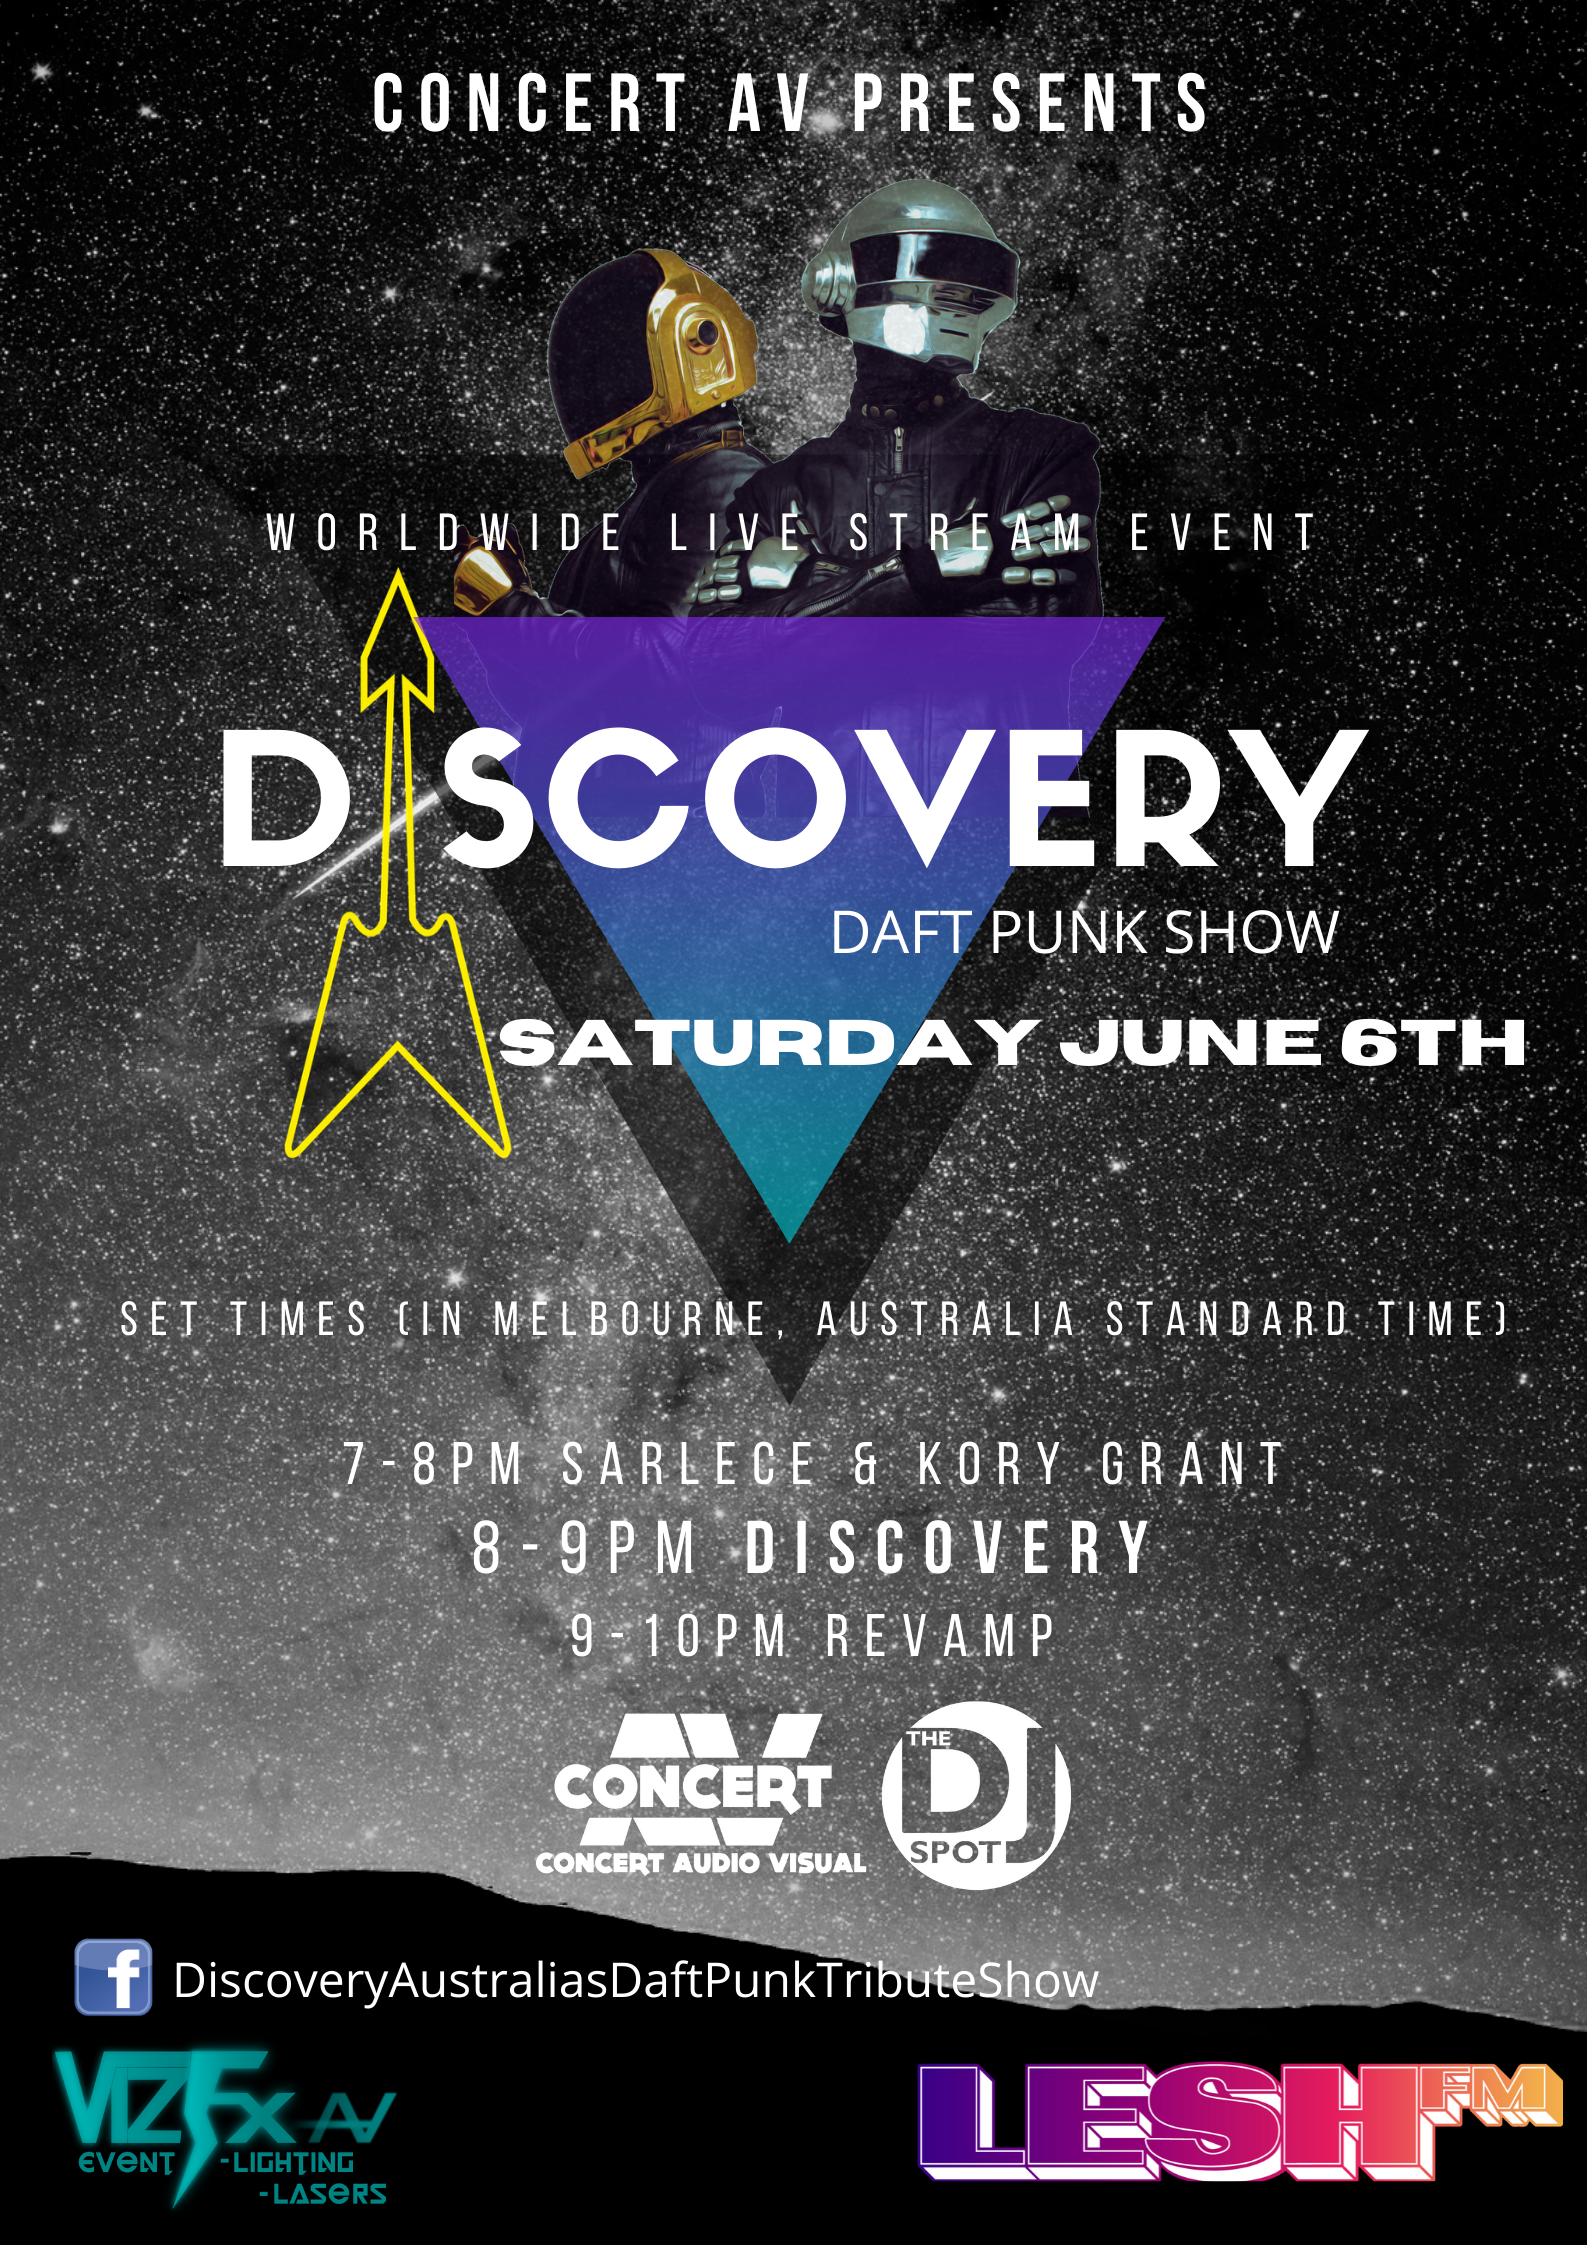 Discovery Daft Punk Show